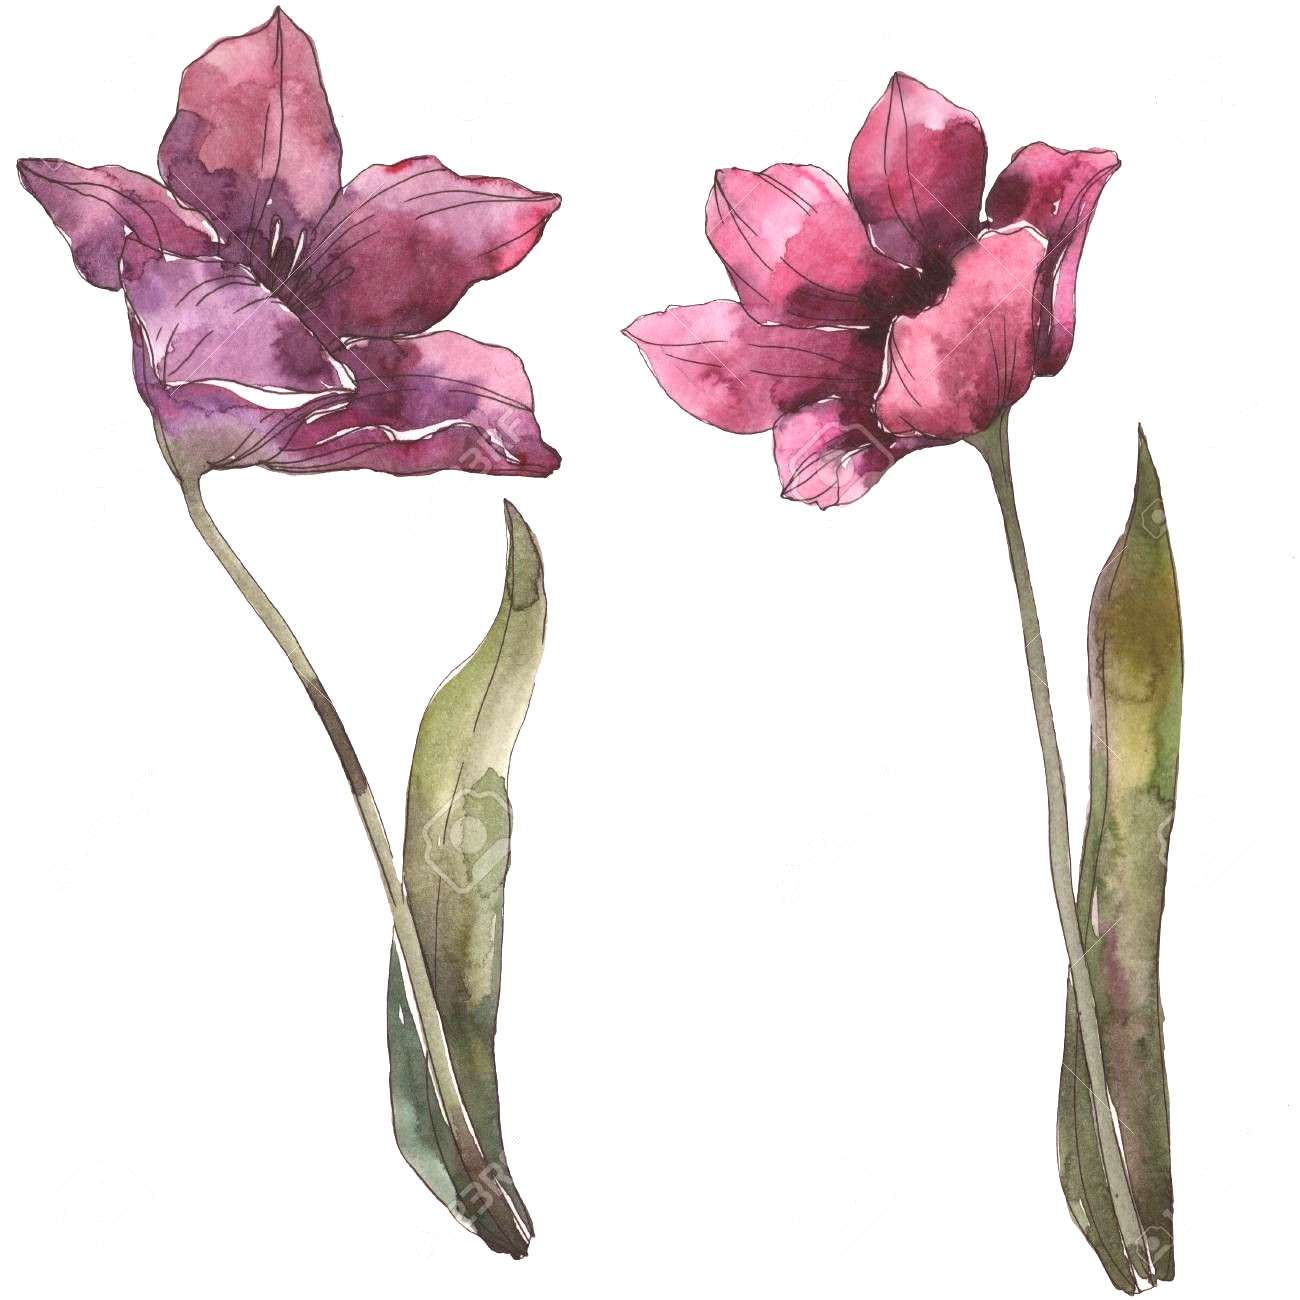 tulip floral botanical flowers. Wild spring leaf wildflower isolated. Watercolor background illustr